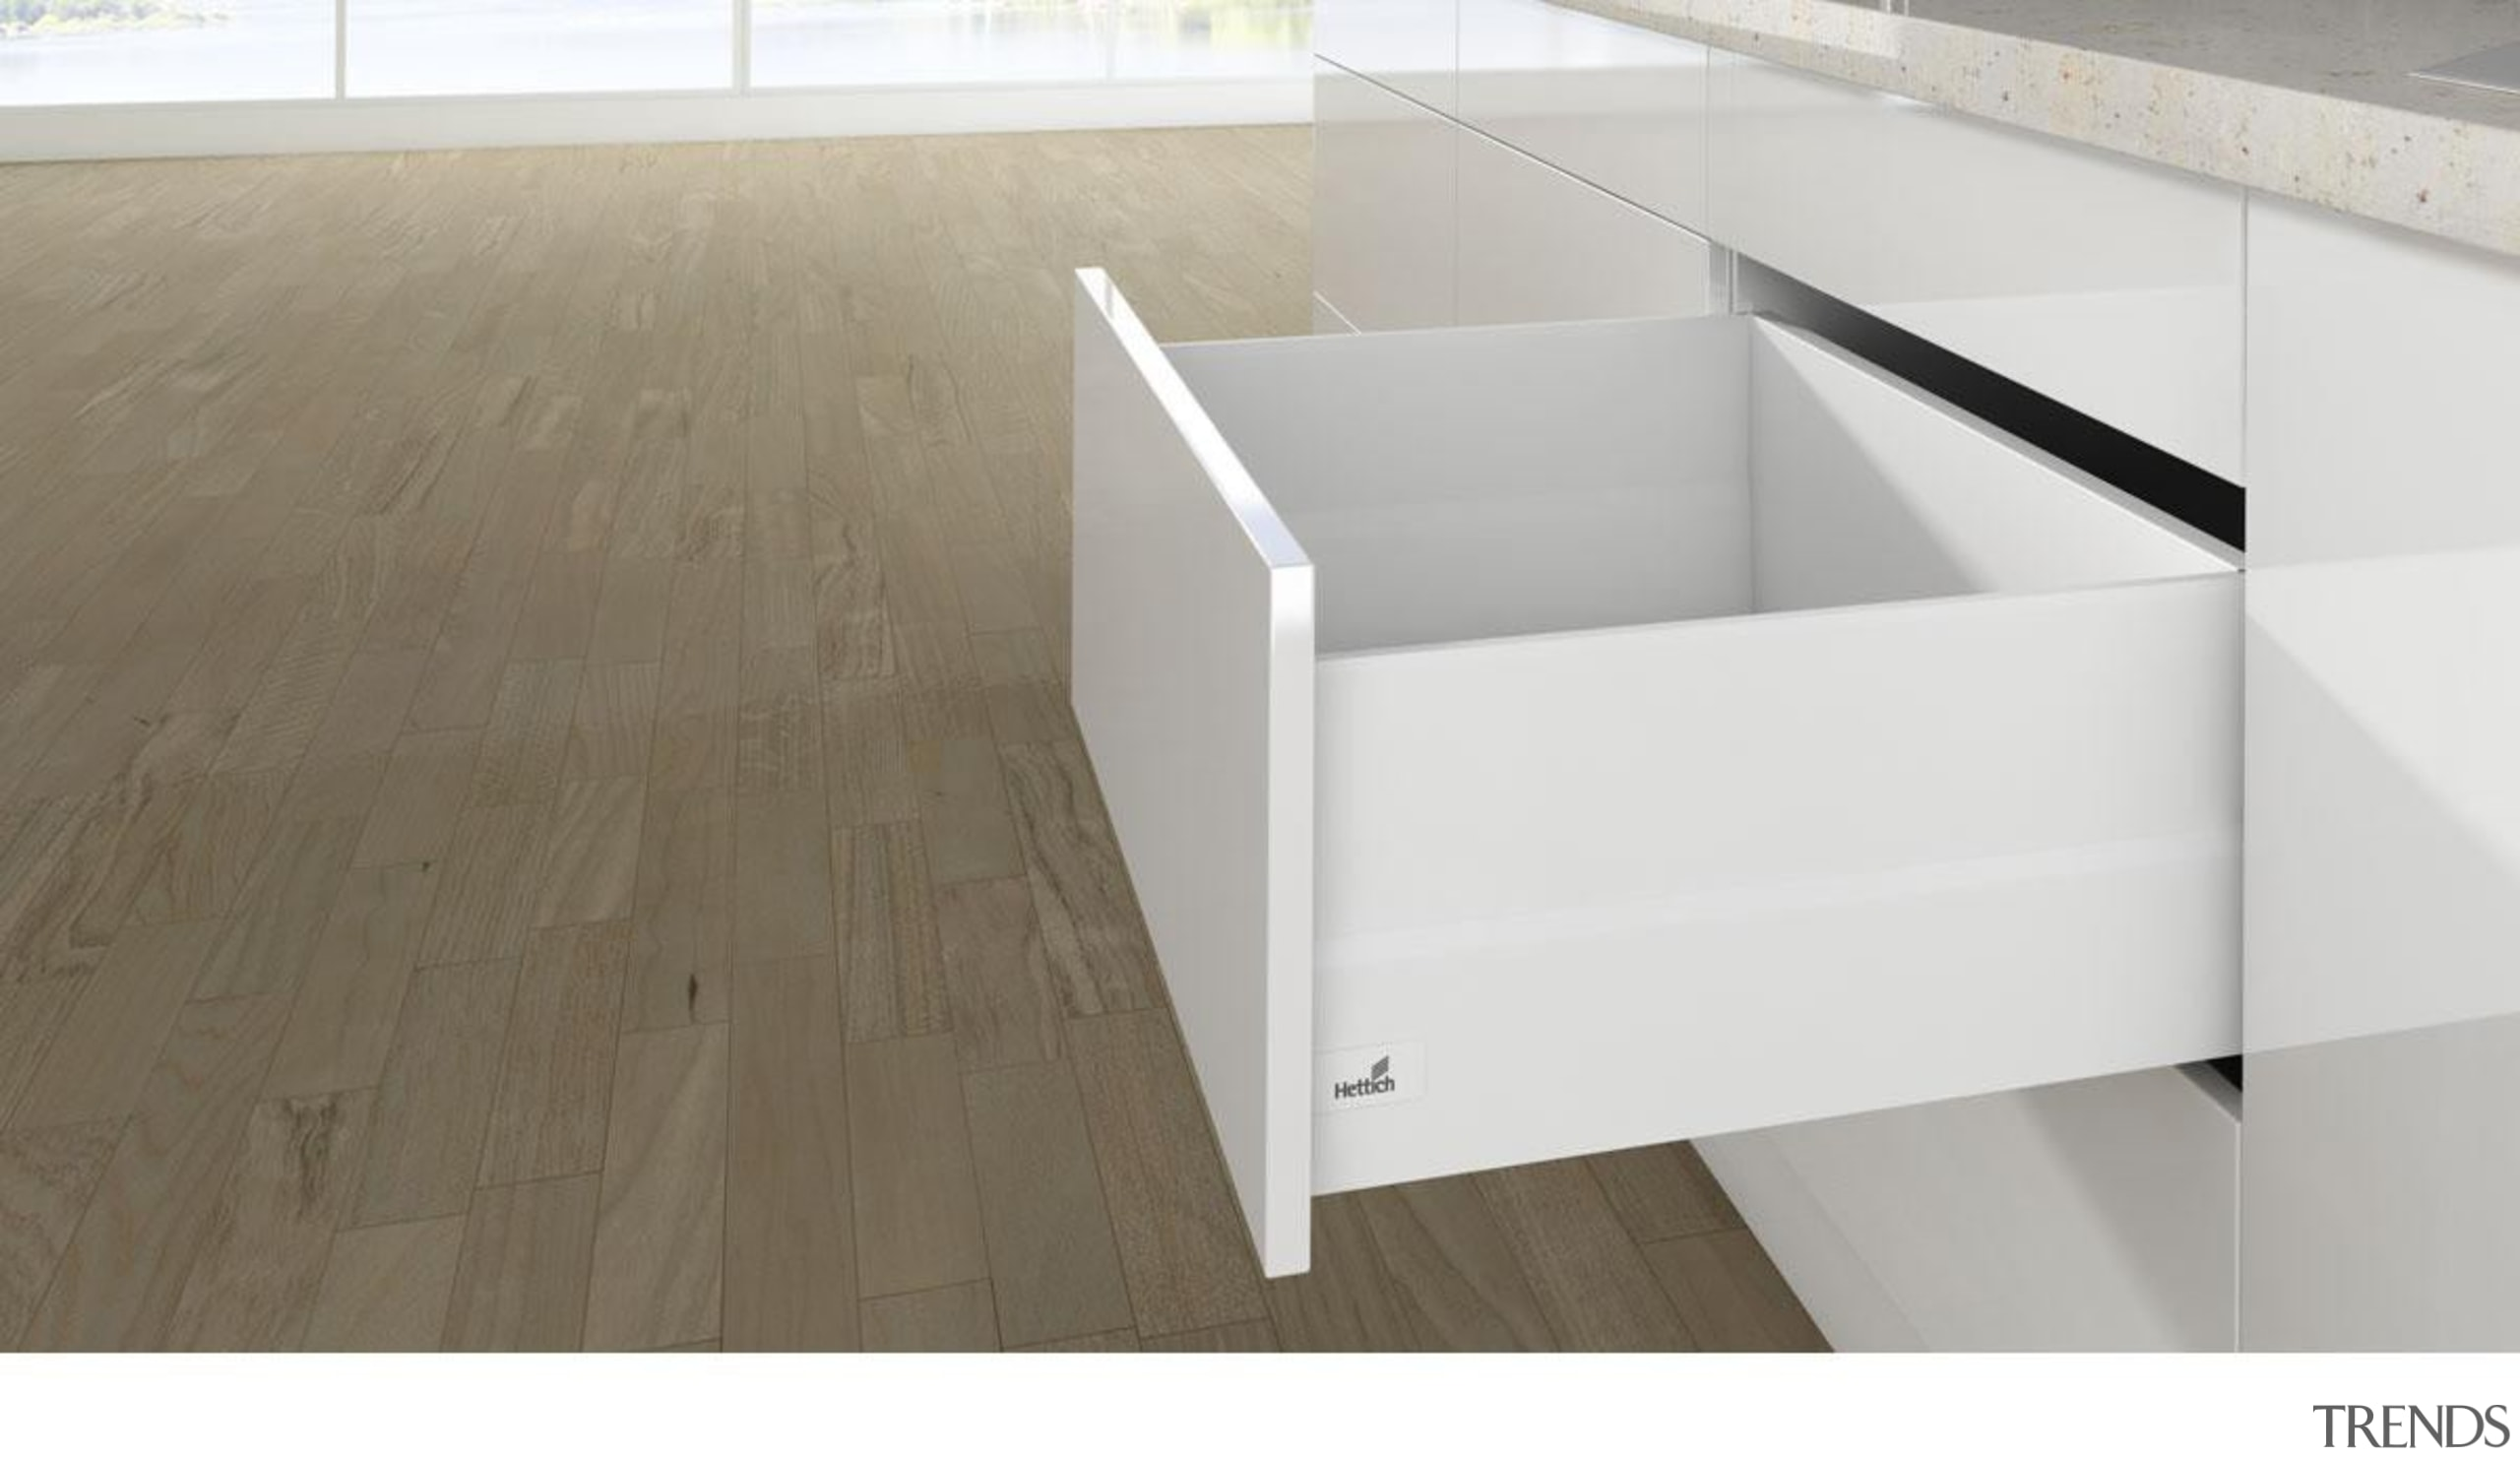 250 Topside drawer - 250 Topside drawer - angle, drawer, floor, furniture, plywood, product, product design, table, white